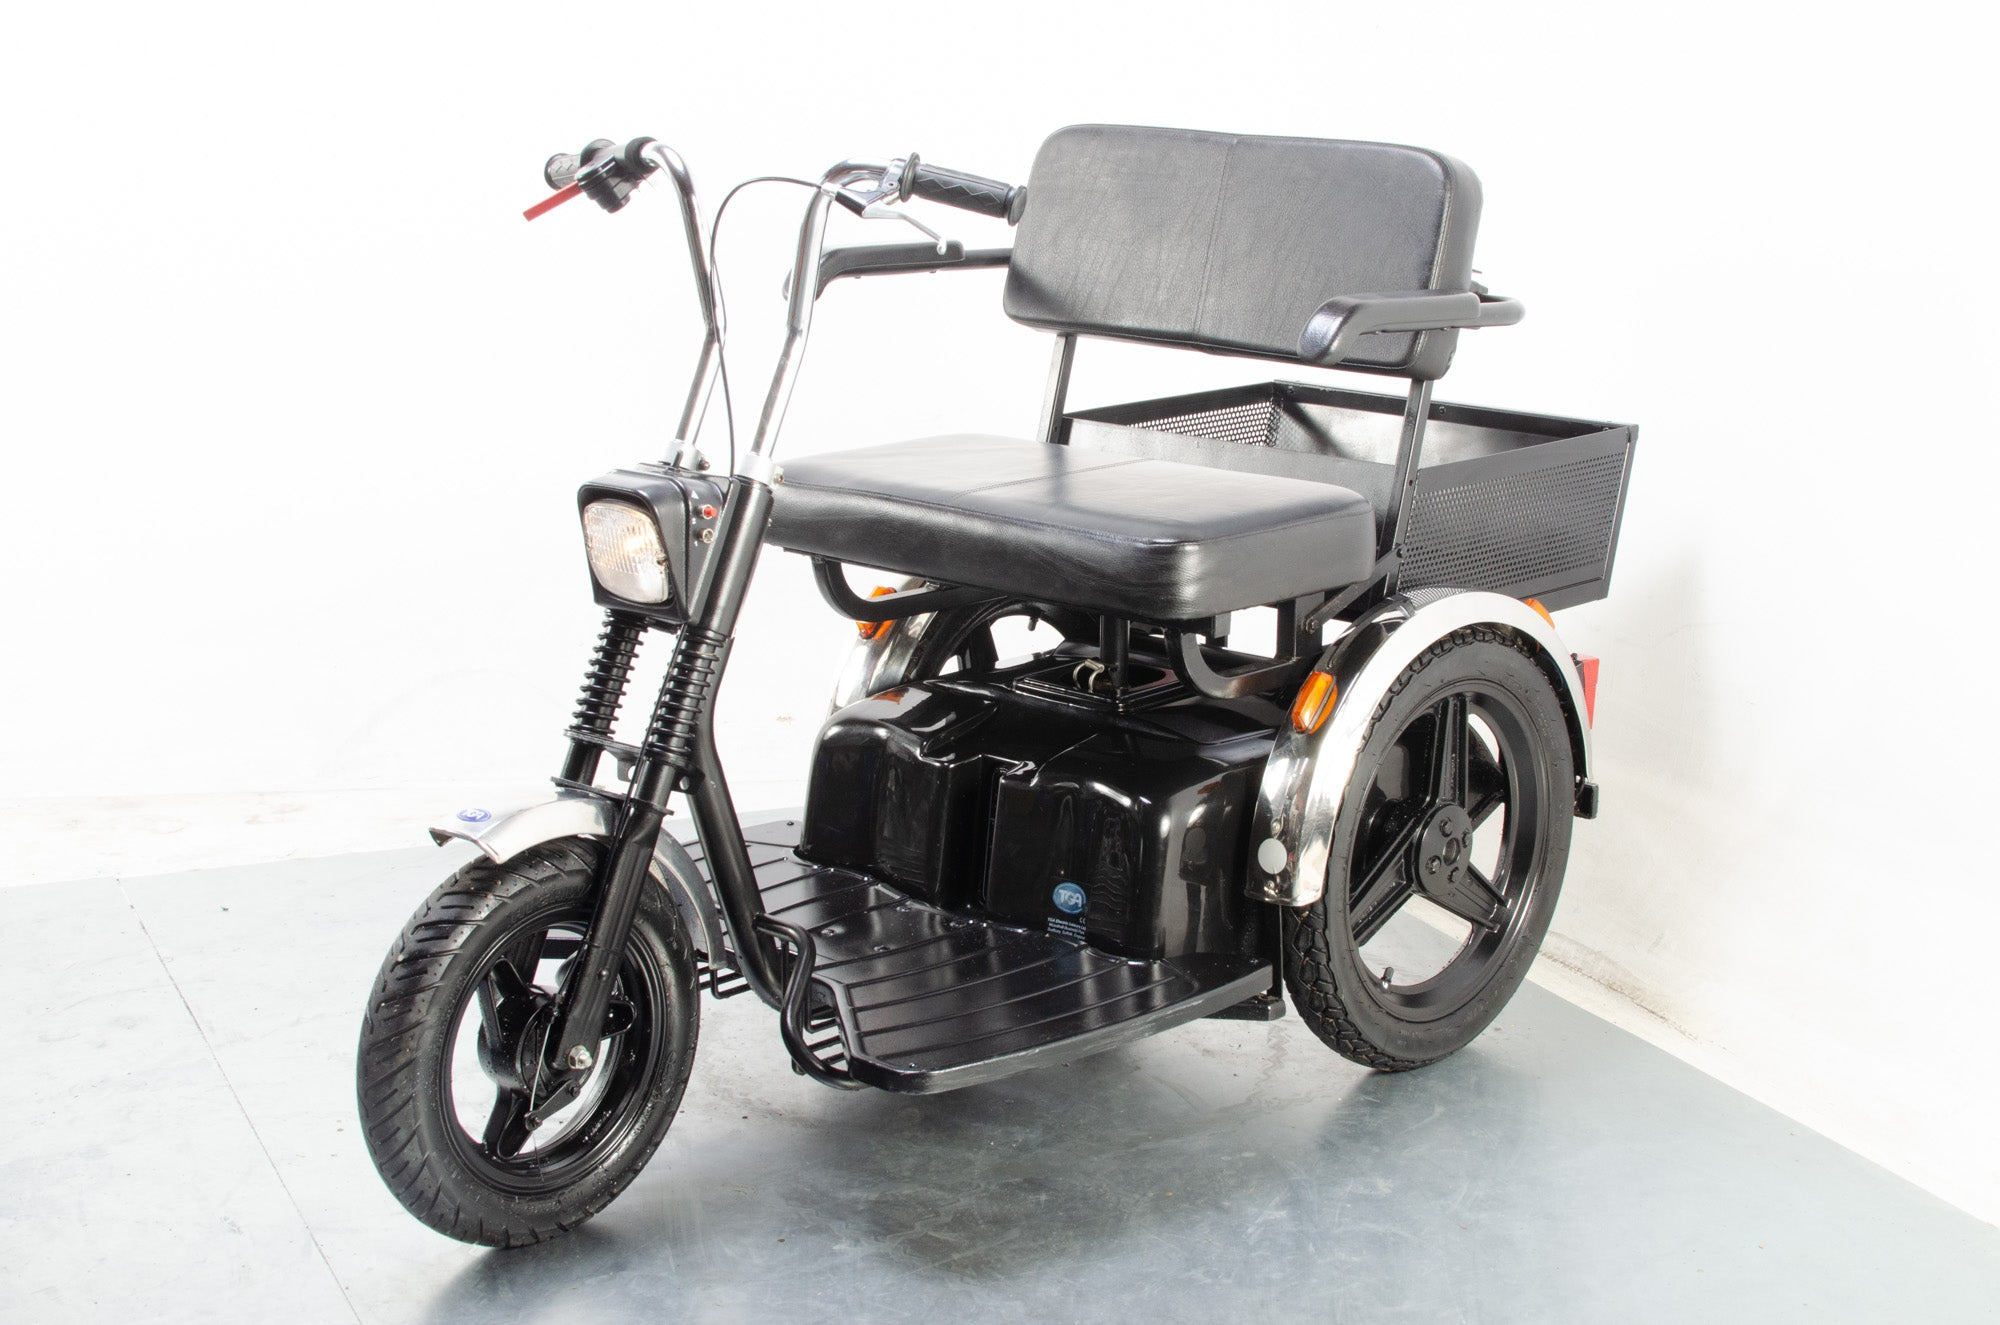 TGA Supersport Twin Seat Tandem Electric Mobility Scooter Trike Road Legal